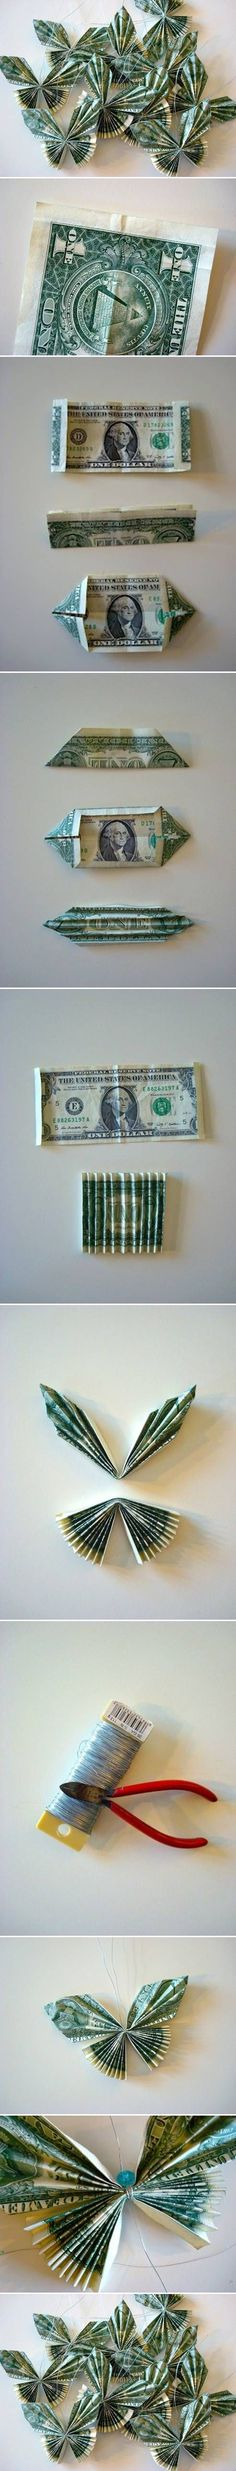 {DIY Dollar Bill Butterfly} gift ideas, paper, origami, bill butterfli, money trees, craft ideas, diy projects, wedding gifts, birthday gifts